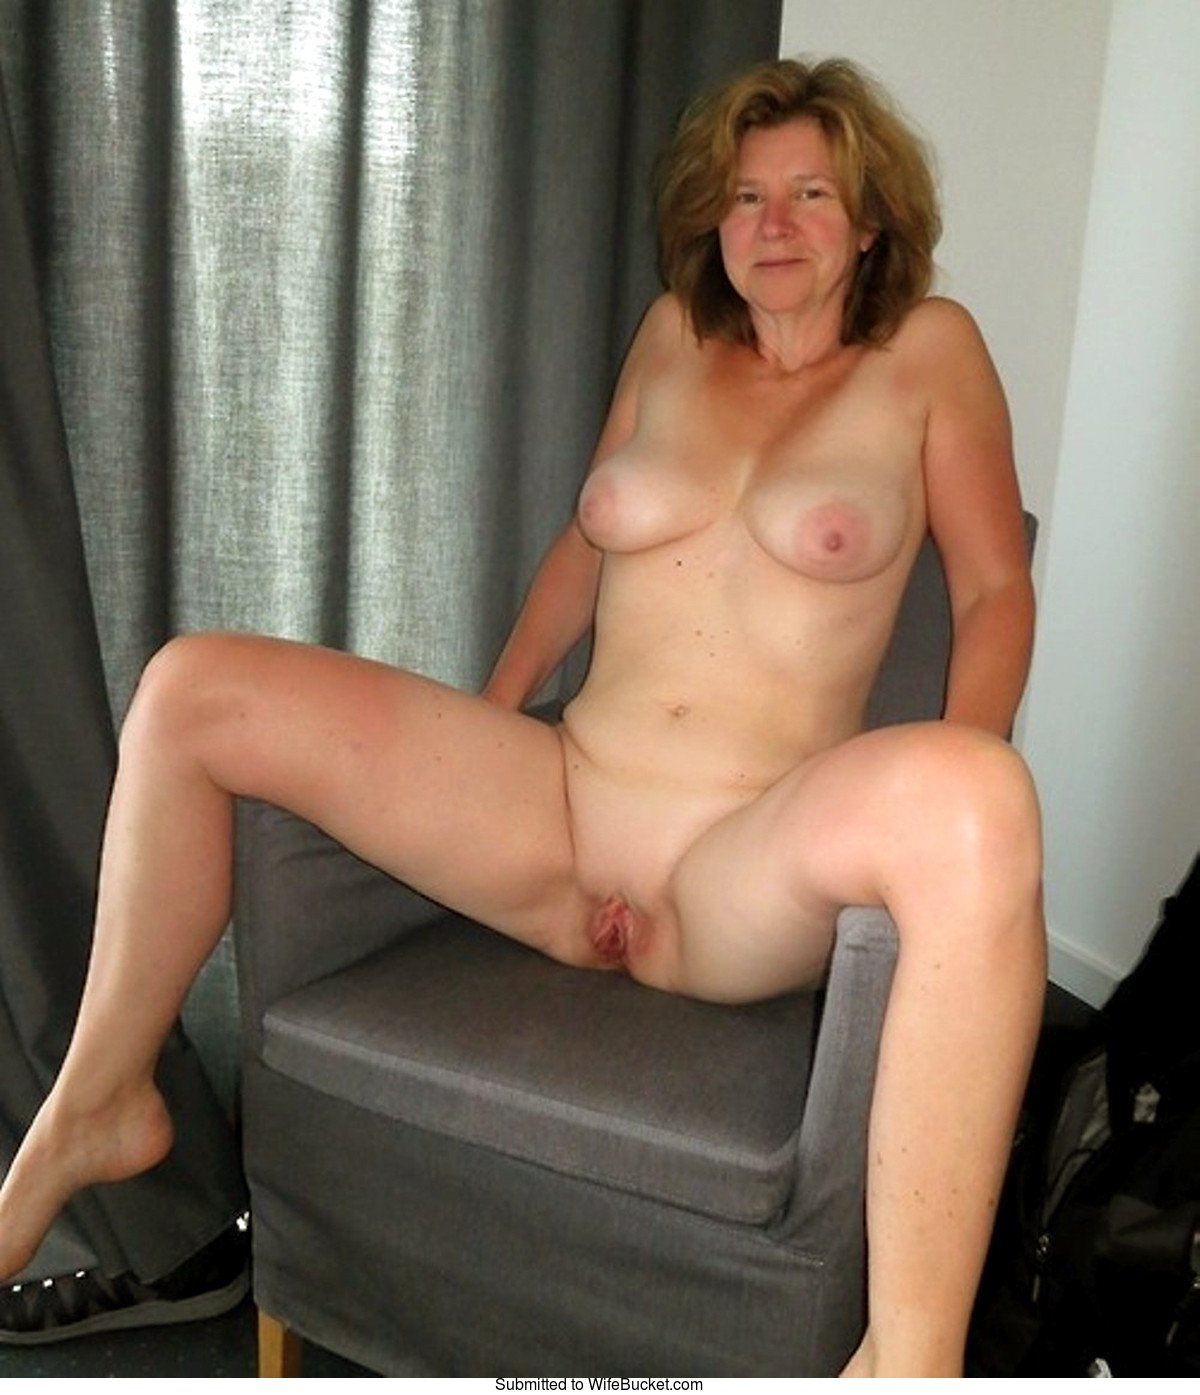 Older Wife Fully Naked On The Chair